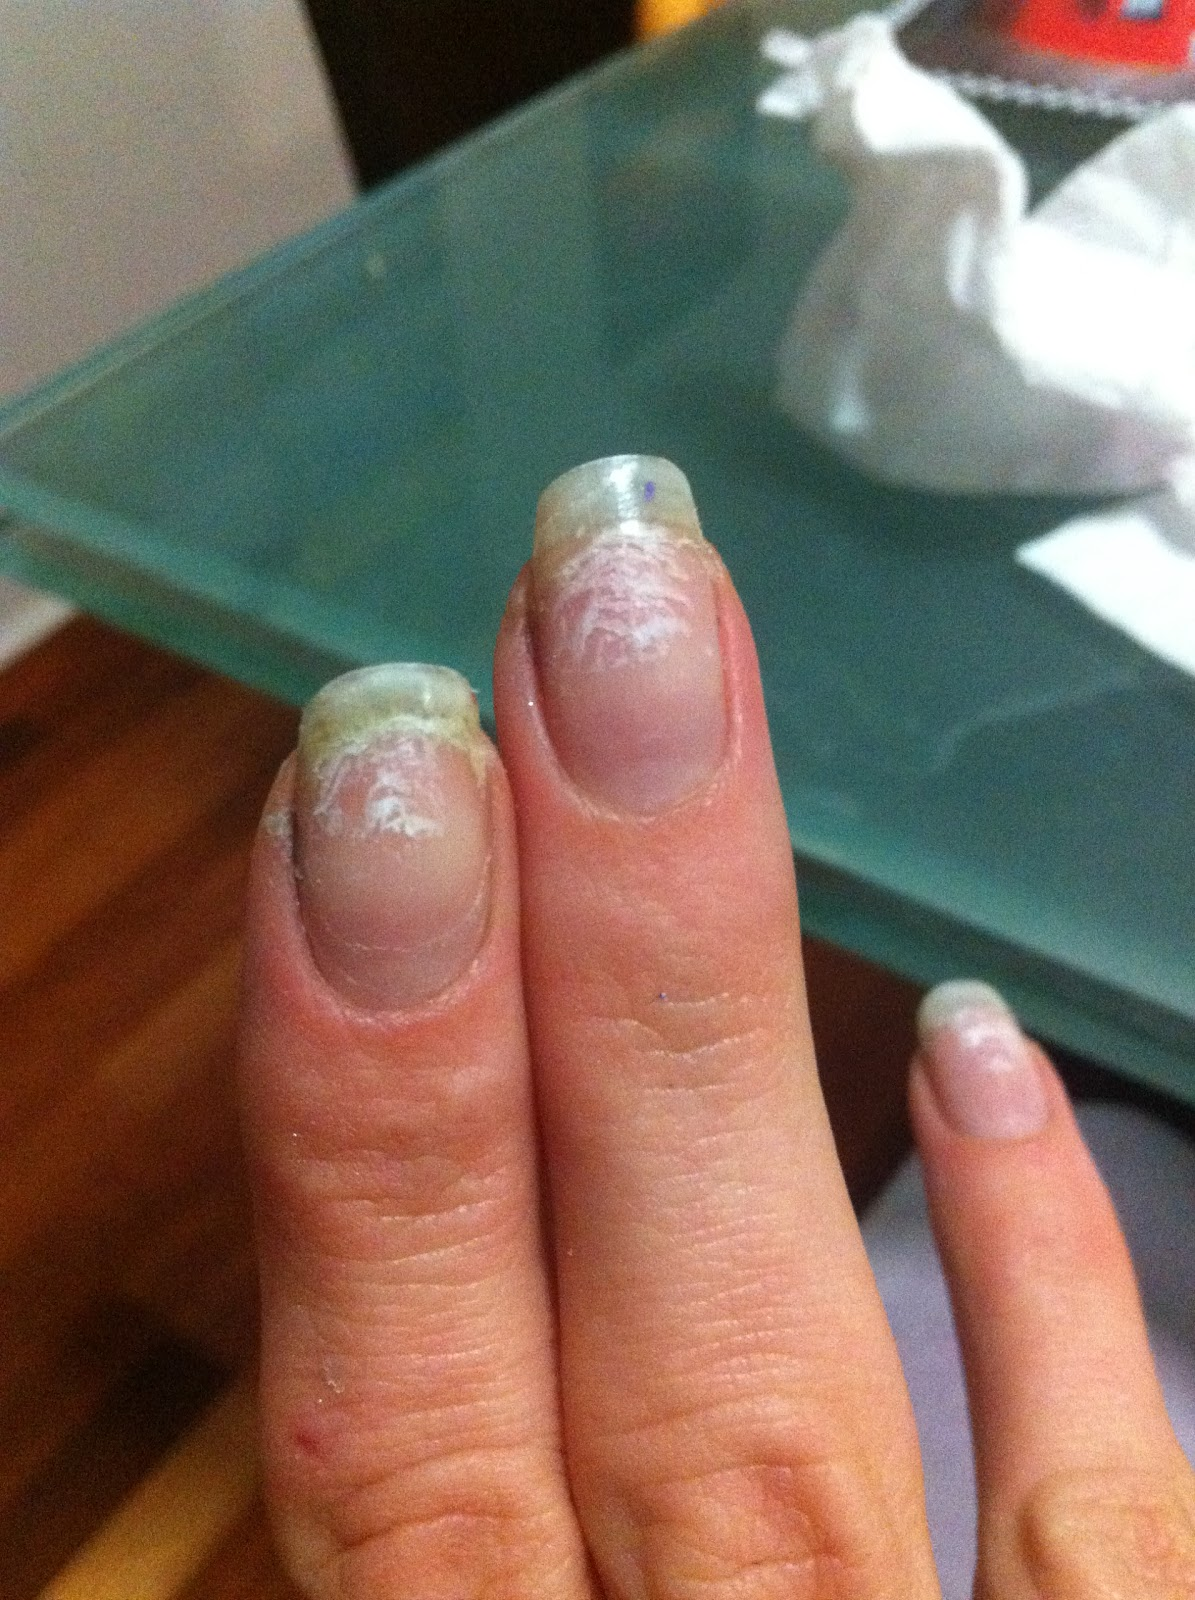 Science of Beauty: How to remove a Shellac manicure/pedicure at home